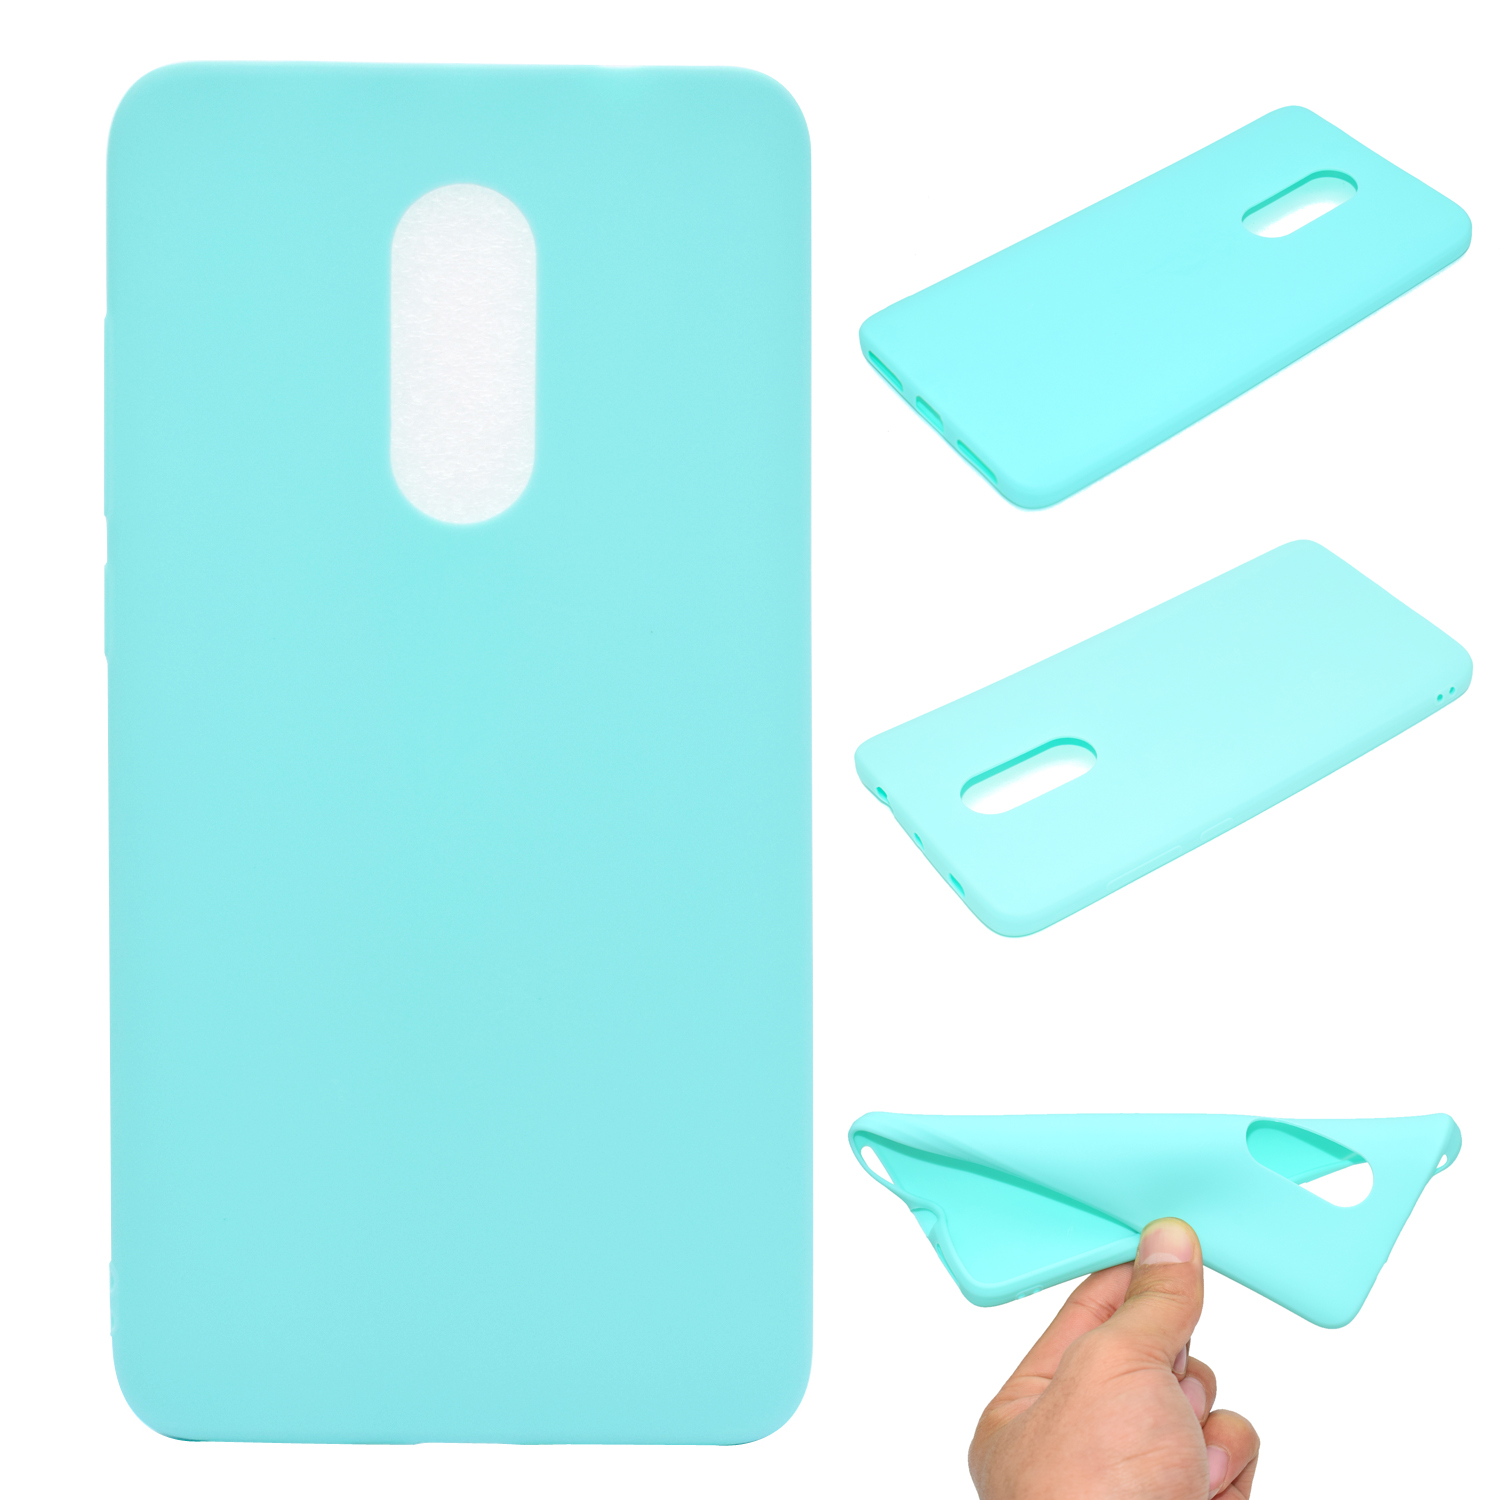 for XIAOMI Redmi NOTE 4X/NOTE 4 Lovely Candy Color Matte TPU Anti-scratch Non-slip Protective Cover Back Case Light blue